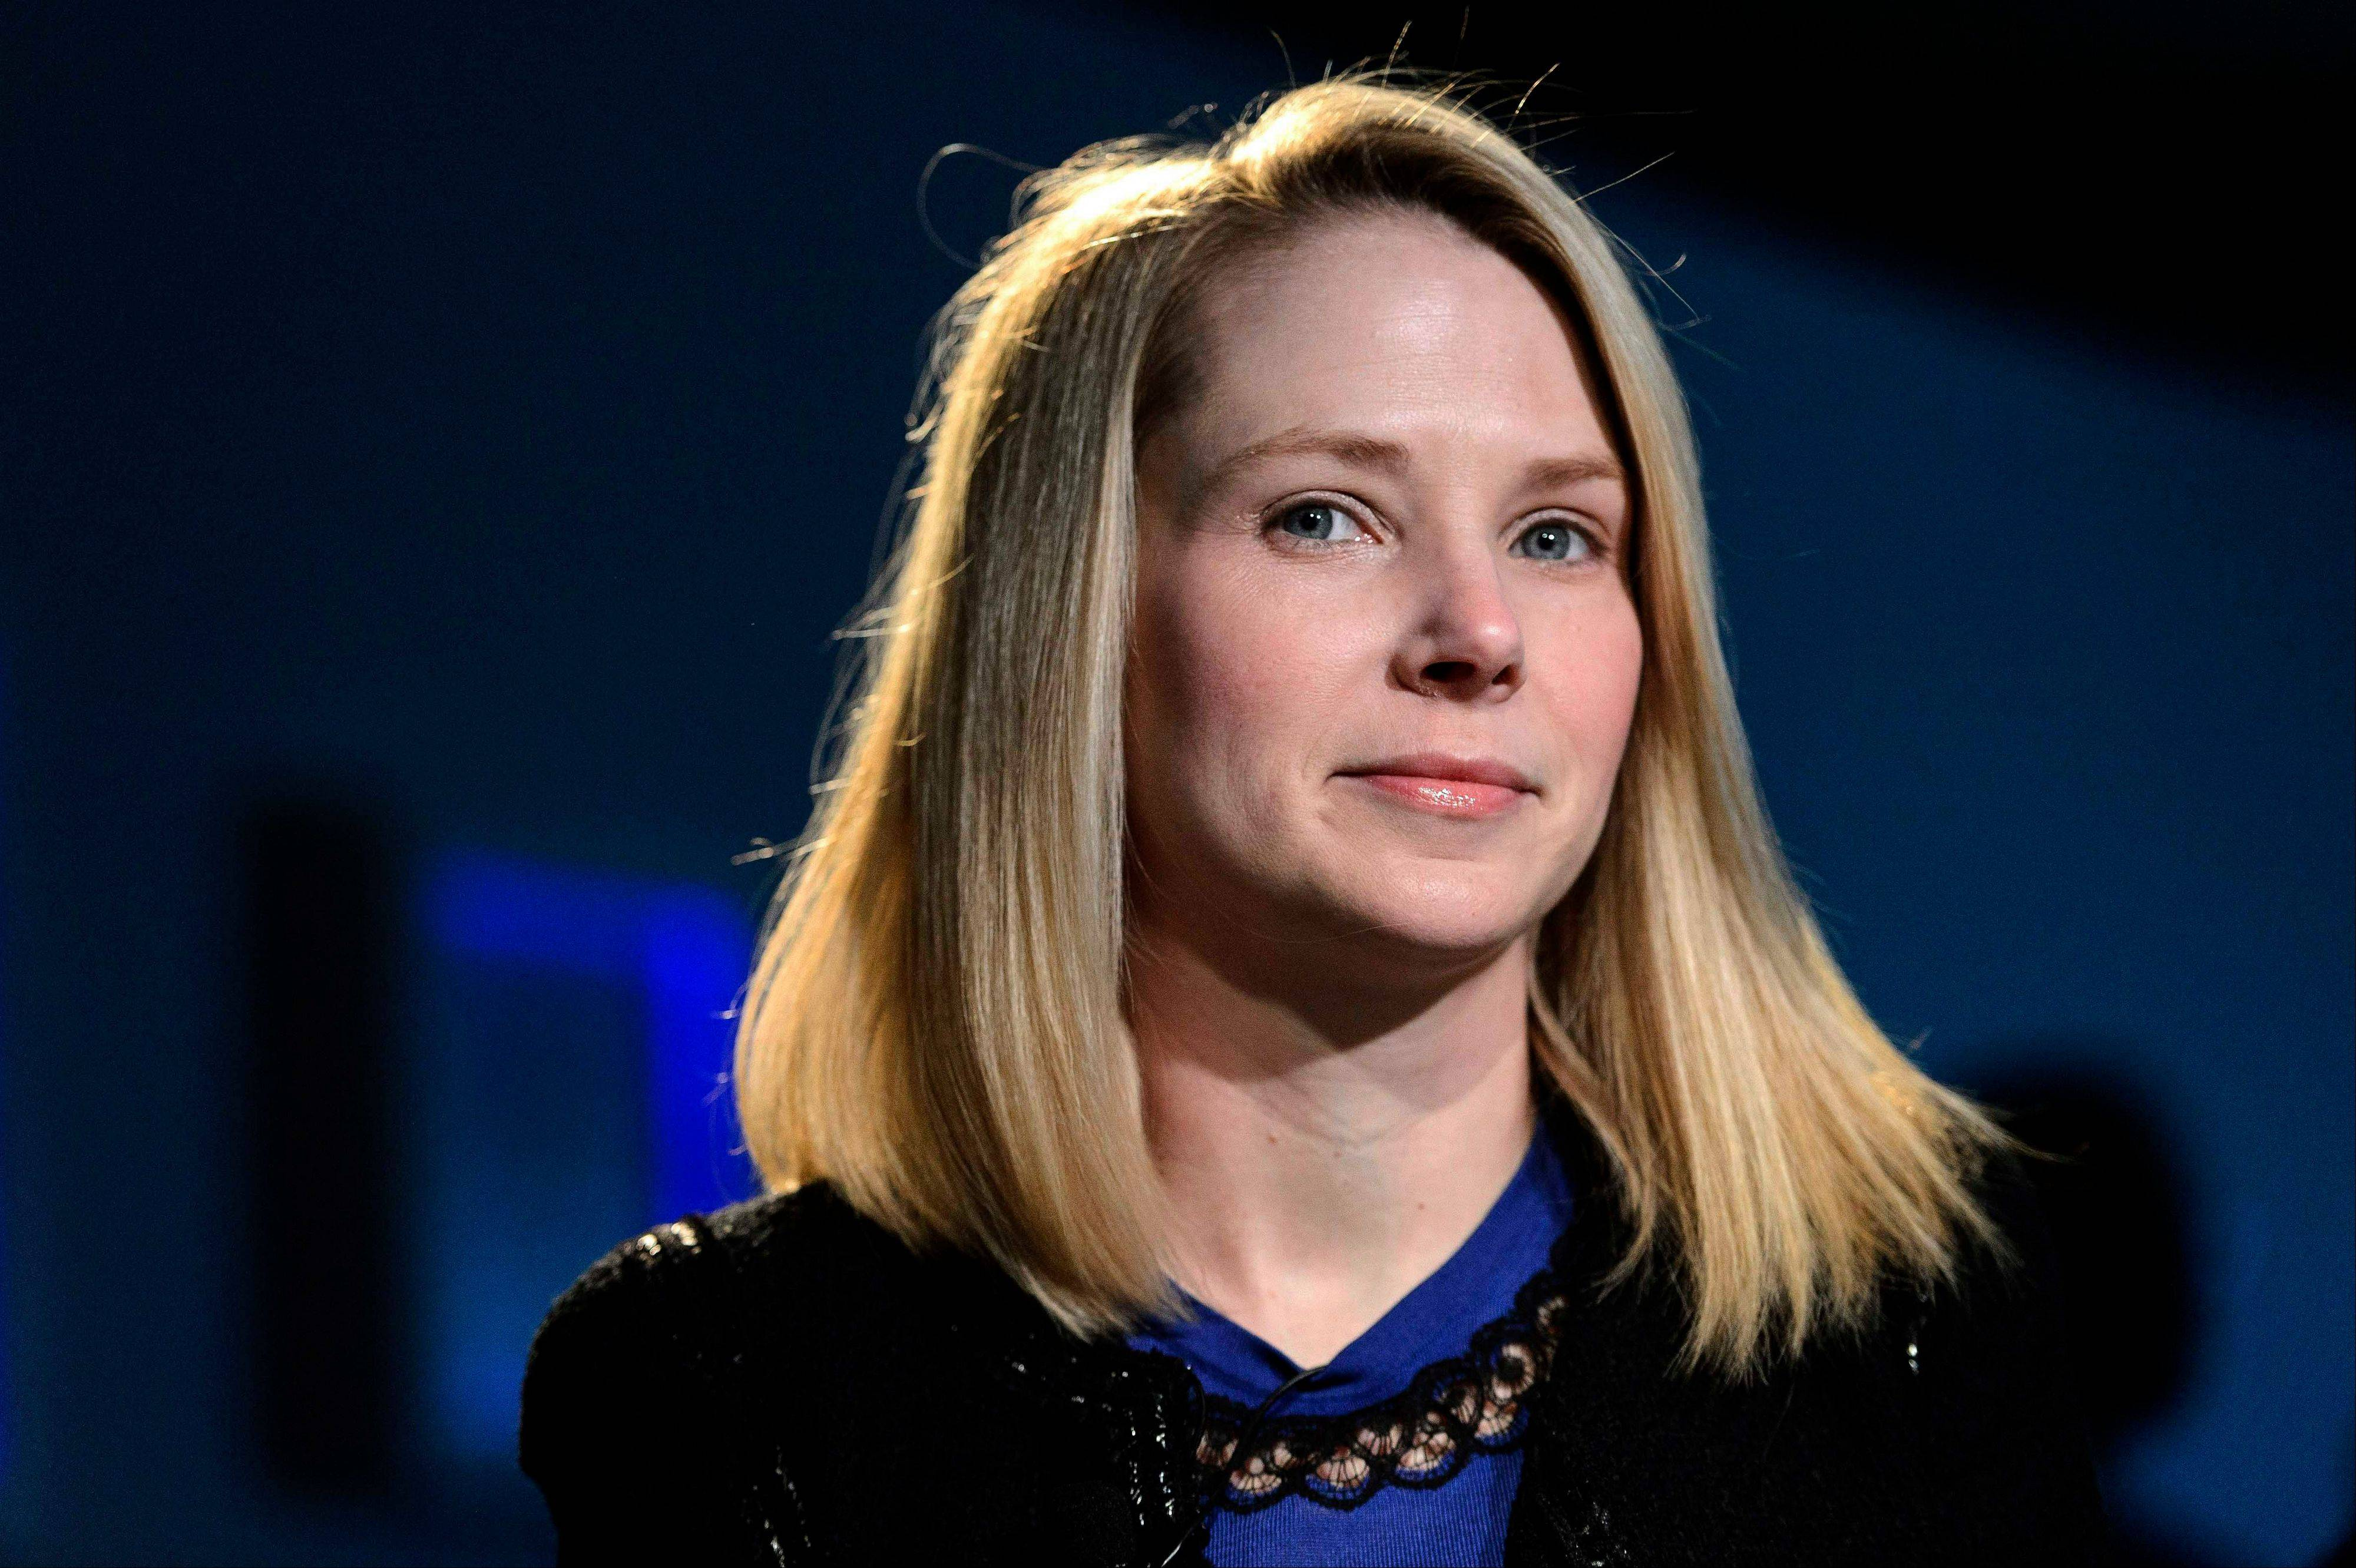 Yahoo Chief Executive Officer Marissa Mayer has been adding features designed to win back users who have fled the Web portal in favor of competing sites such as Facebook Inc. and Google Inc.